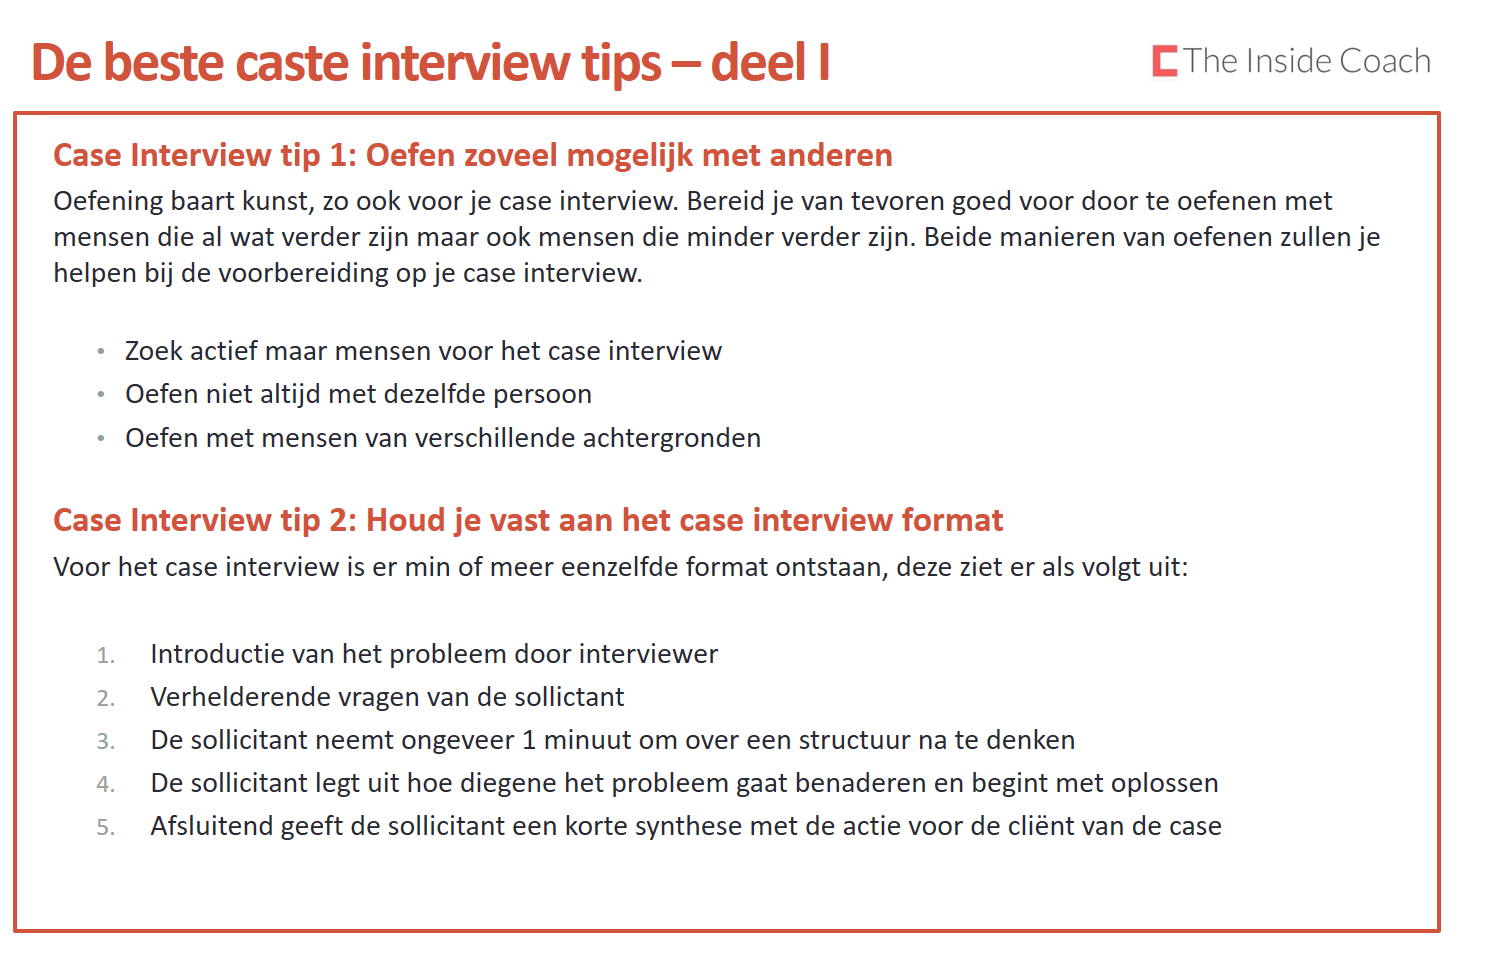 case interview tips selectie van de 10 beste case interview tips the inside coach deel1